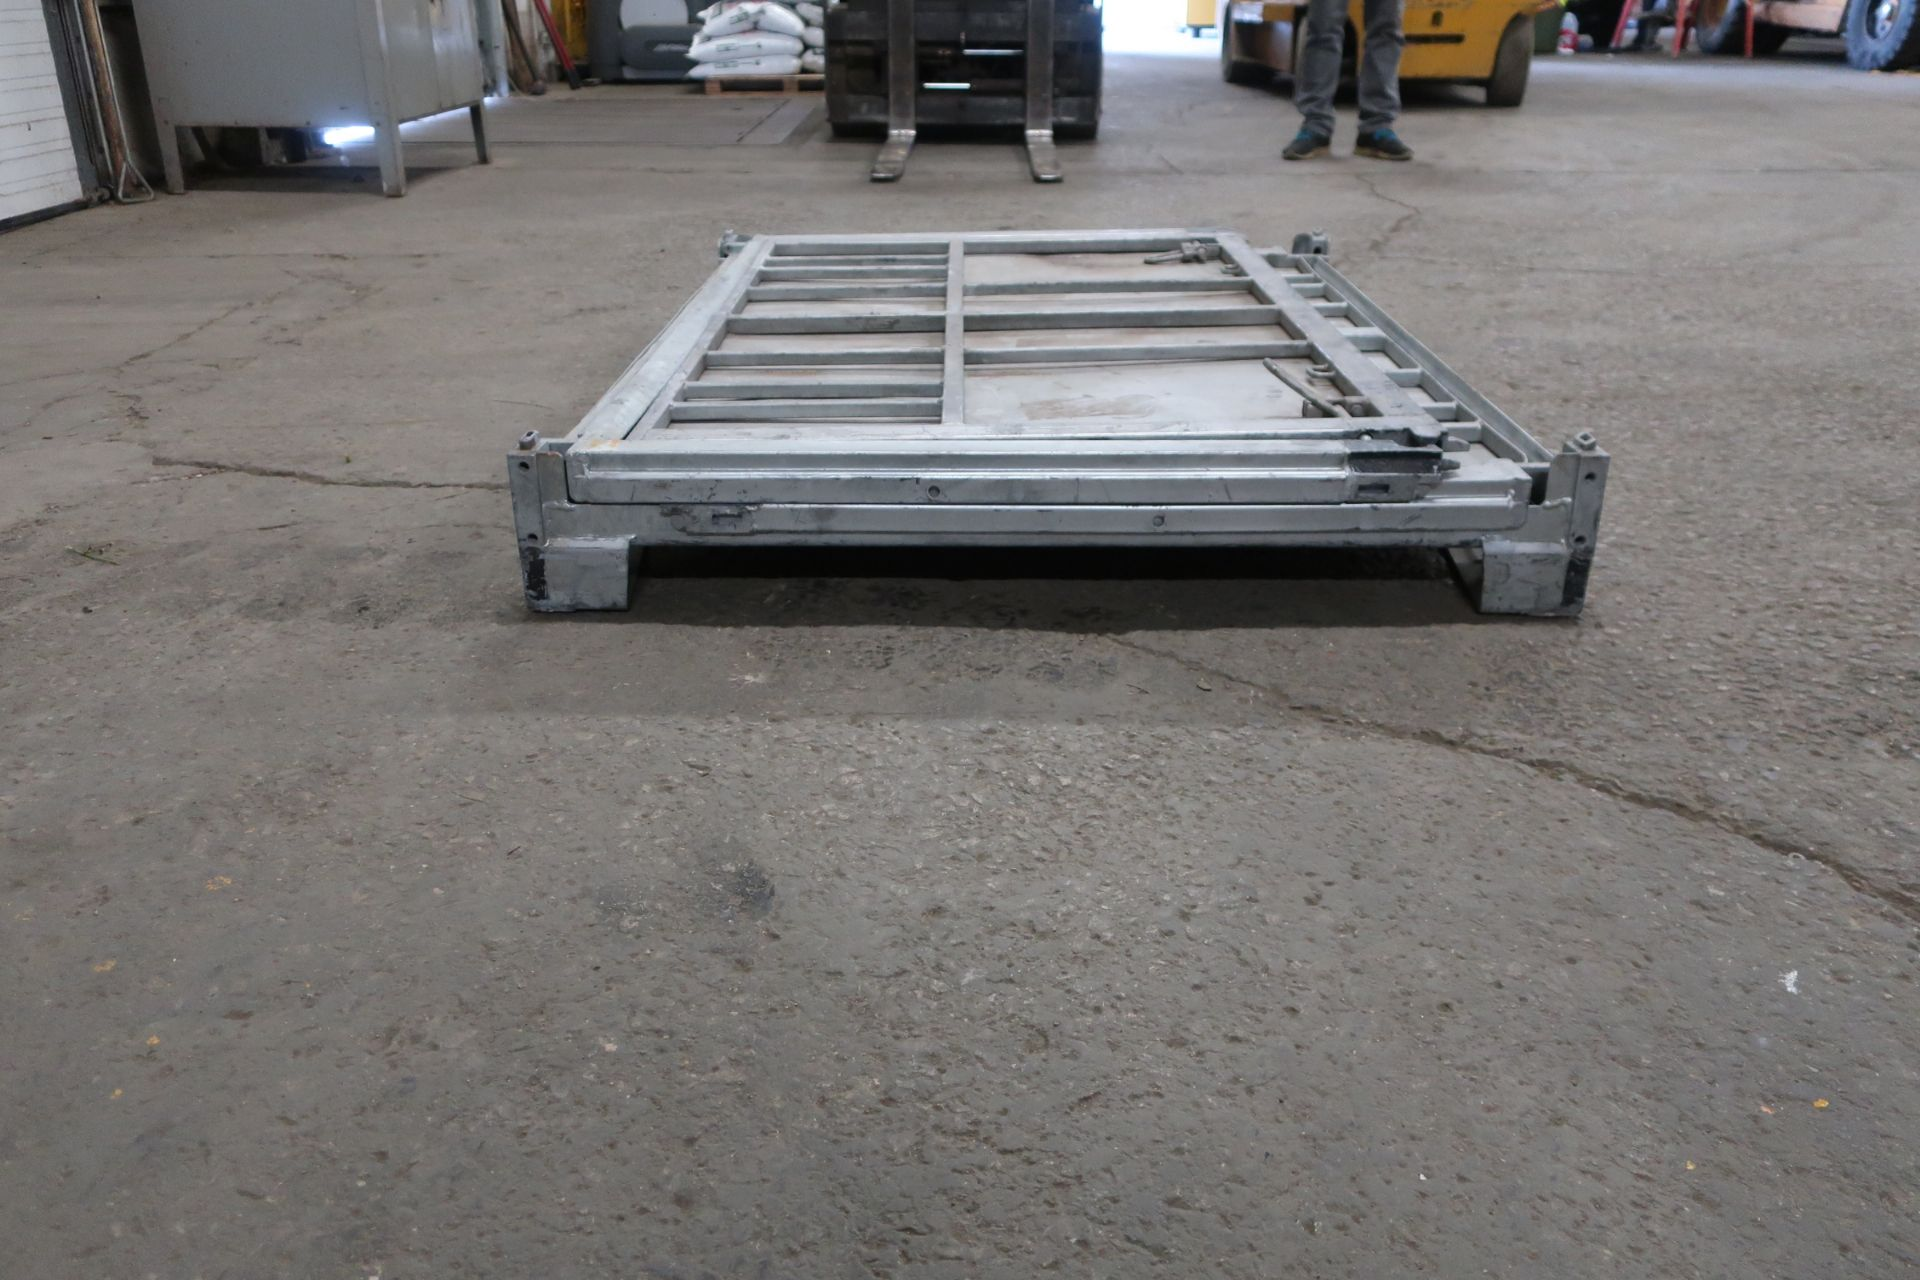 """Lot of 5 (5 Units) Steel Like New Folding Collapsable Bins - 58"""" x 45"""" x 43"""" tall (TIMES THE BID) - Image 3 of 3"""